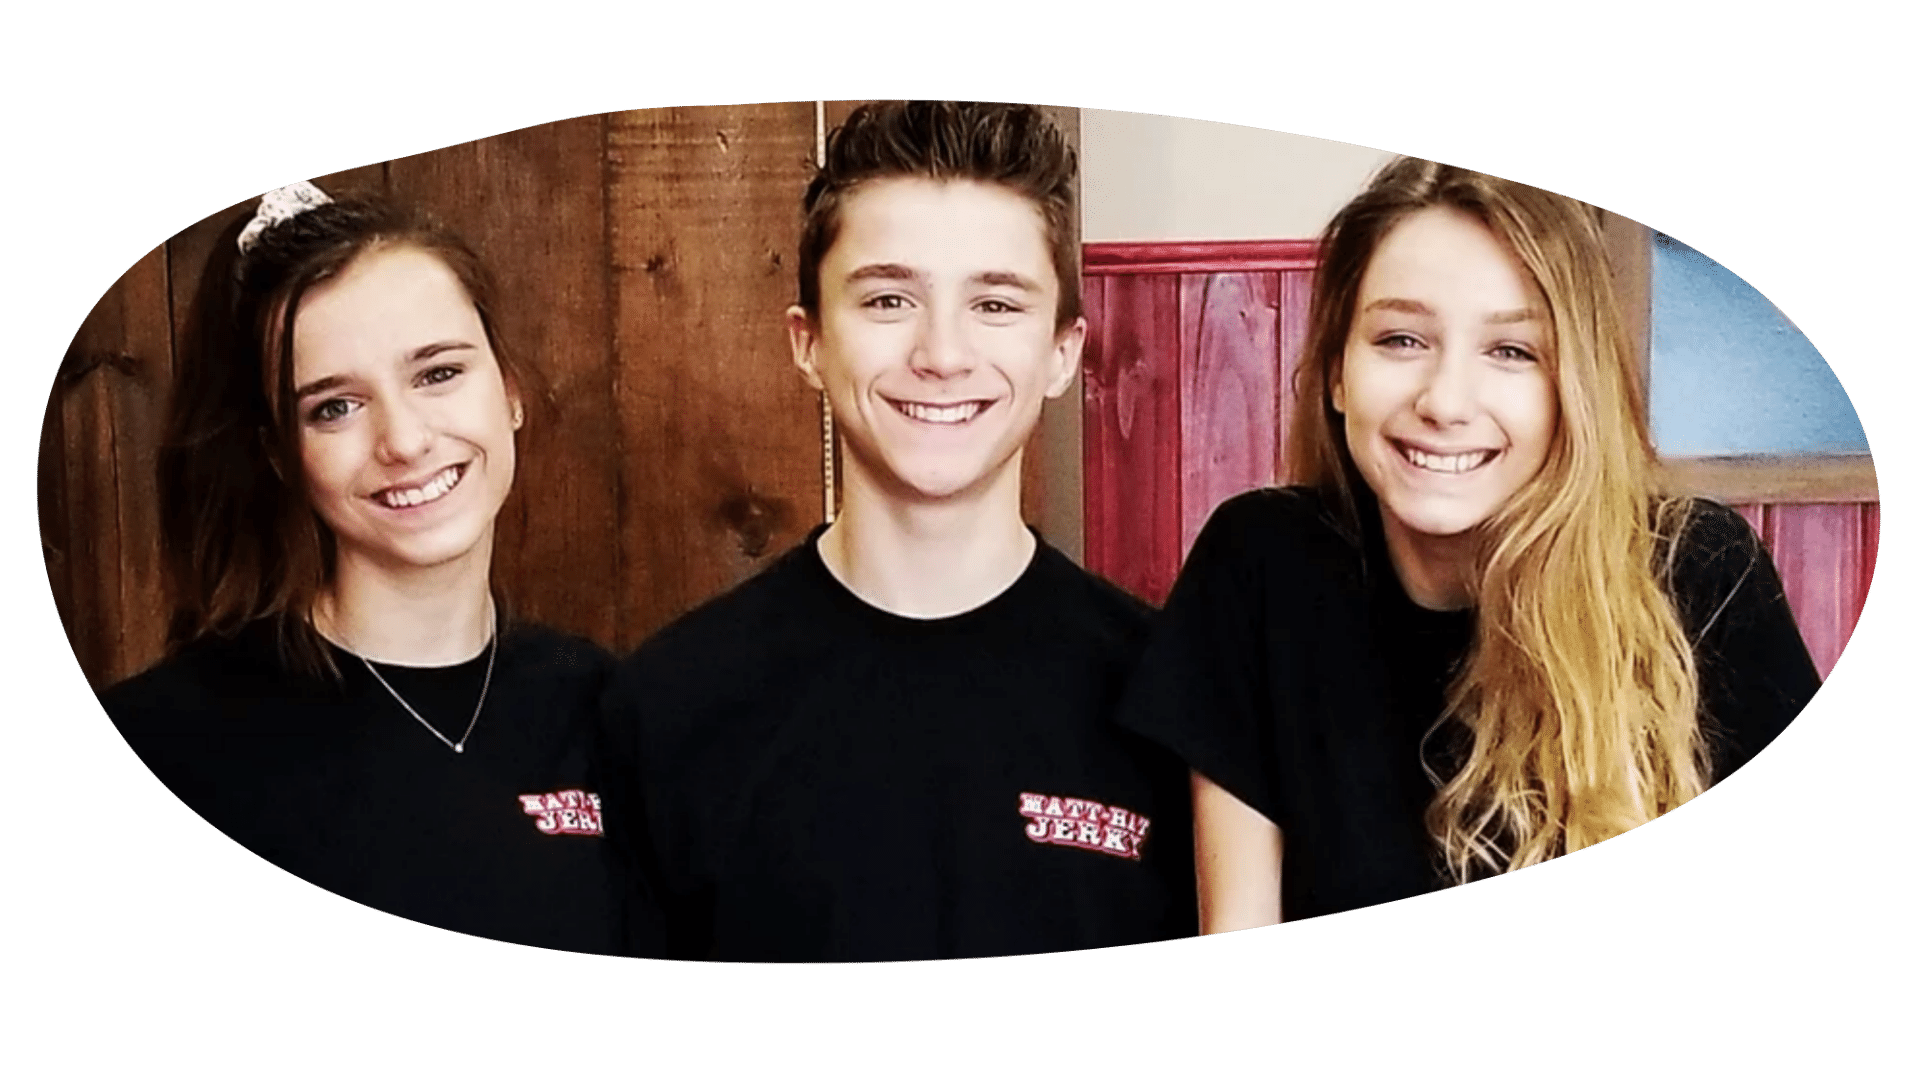 The founder of Matt-Hat Jerky, Matt Kuplack with his sisters Kayla and Katrina posing for a picture.